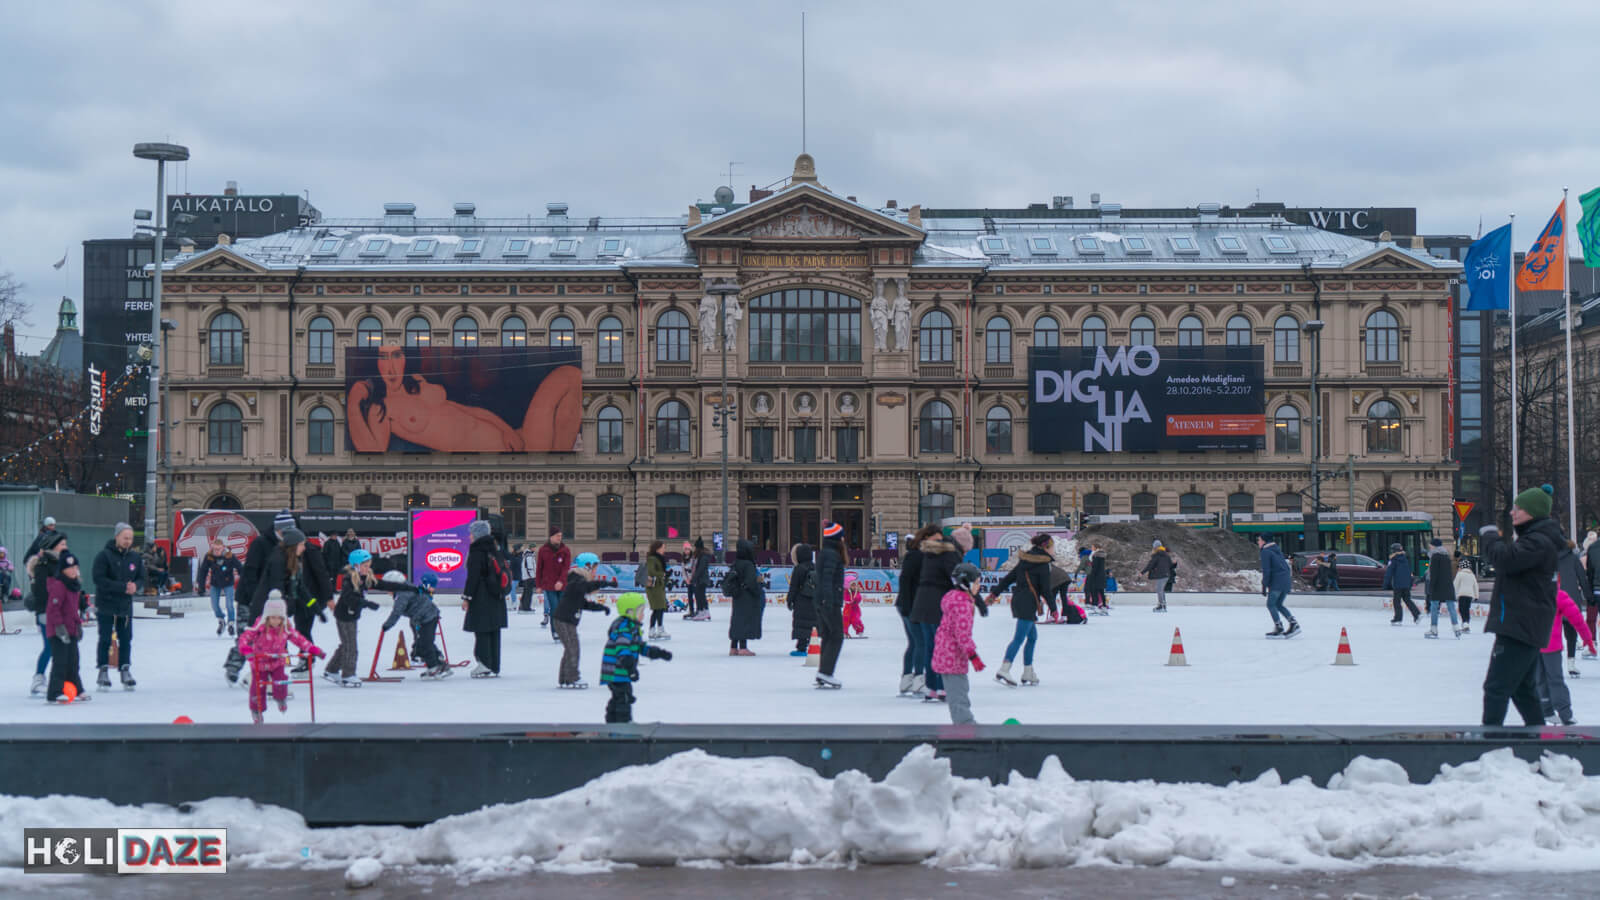 Ice Park in front of Ateneum art gallery in Helsinki, part of the Finnish National Gallery